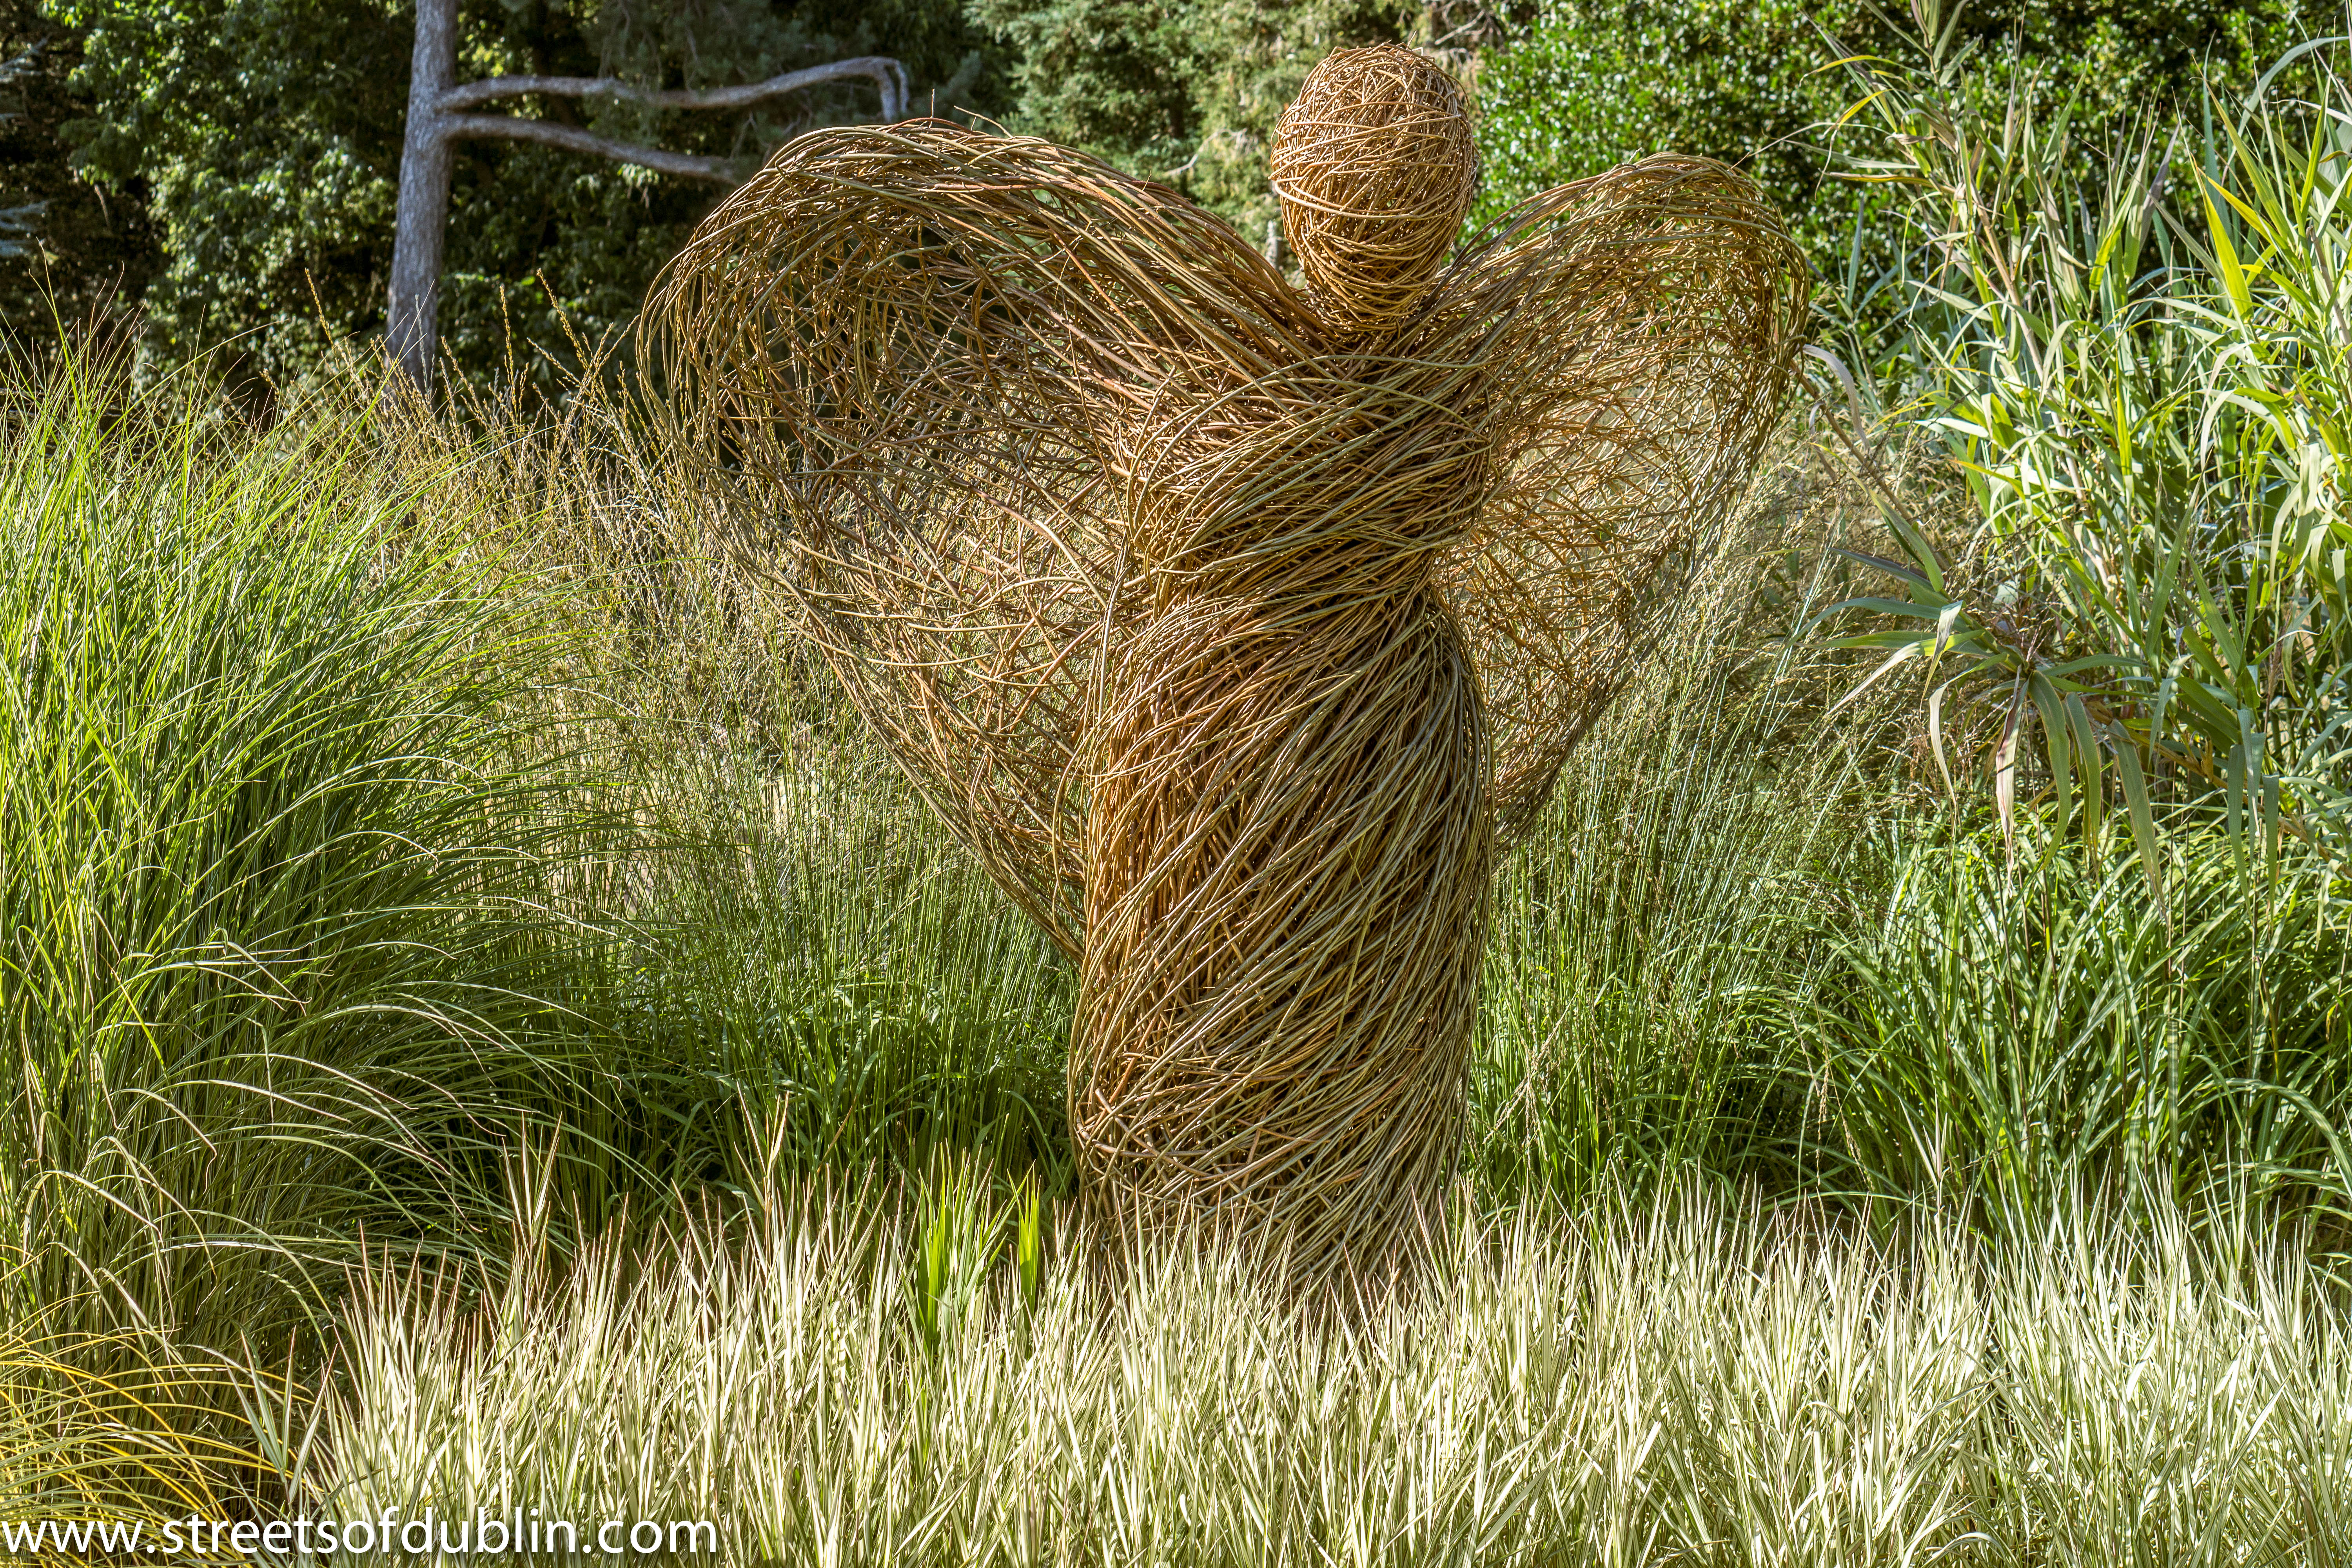 File:The Sleeping Butterfly by Brenda Marron- Sculpture In Context ...